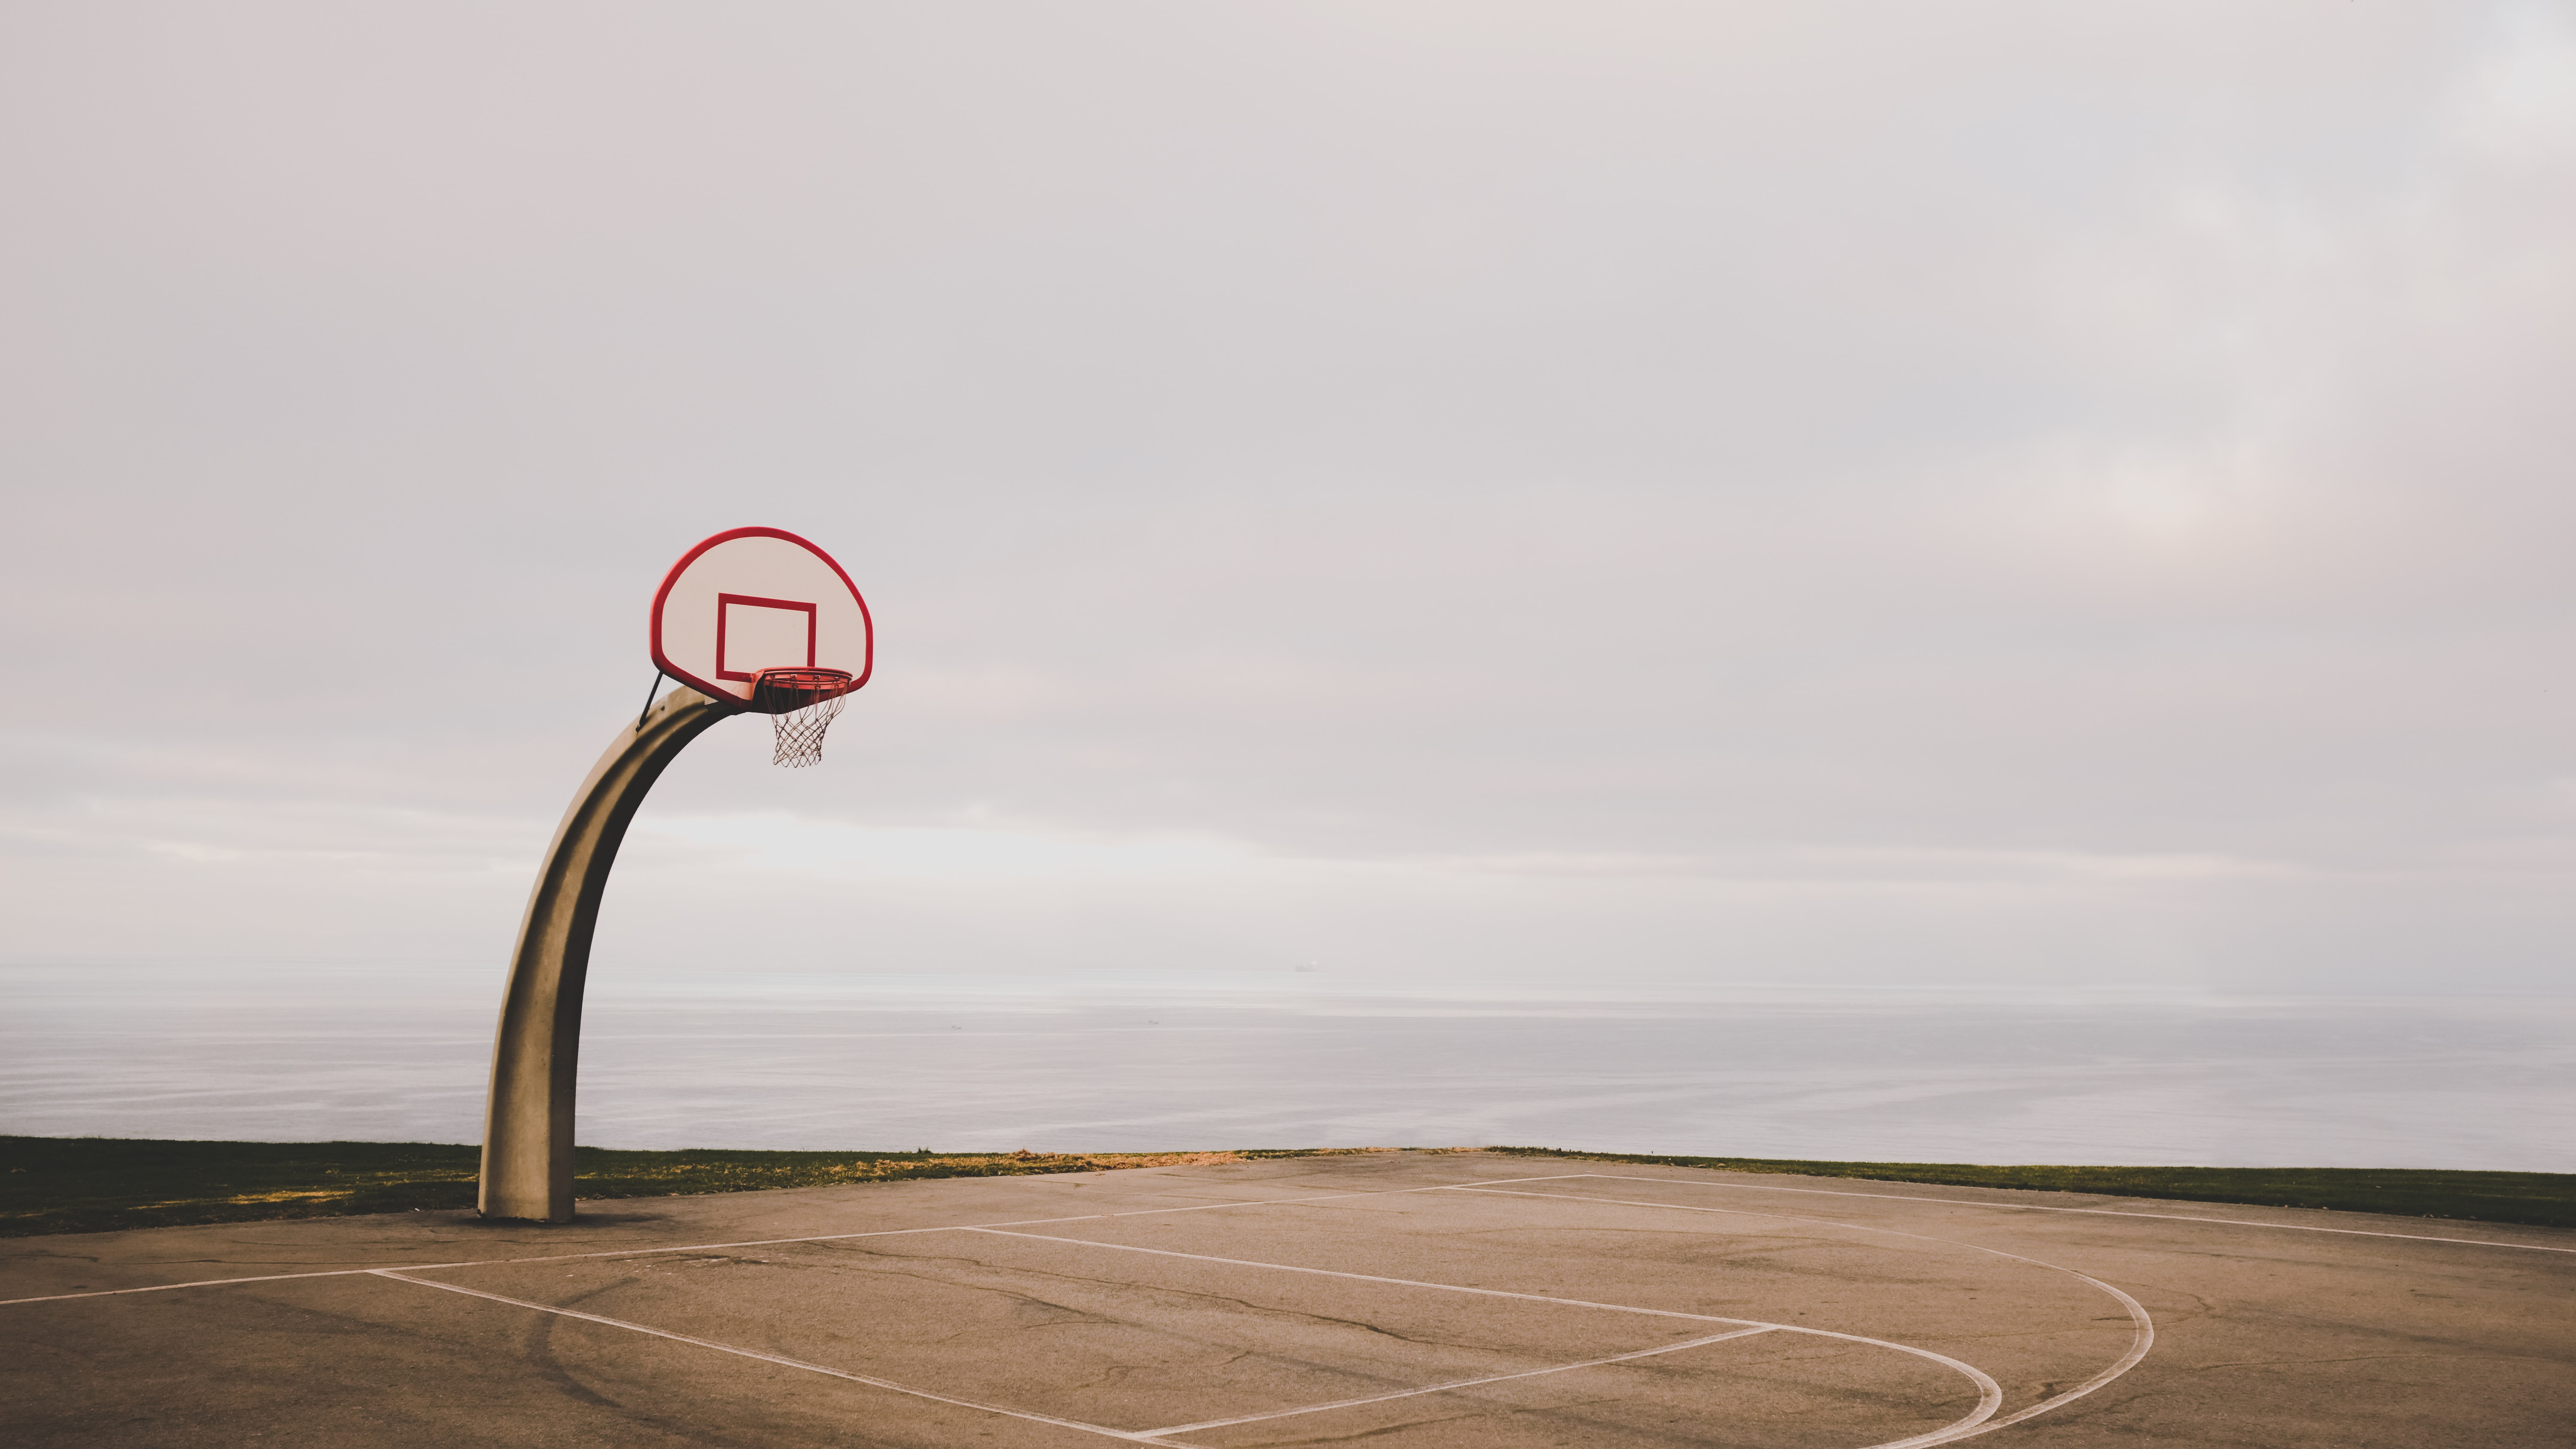 basketball court near body of water